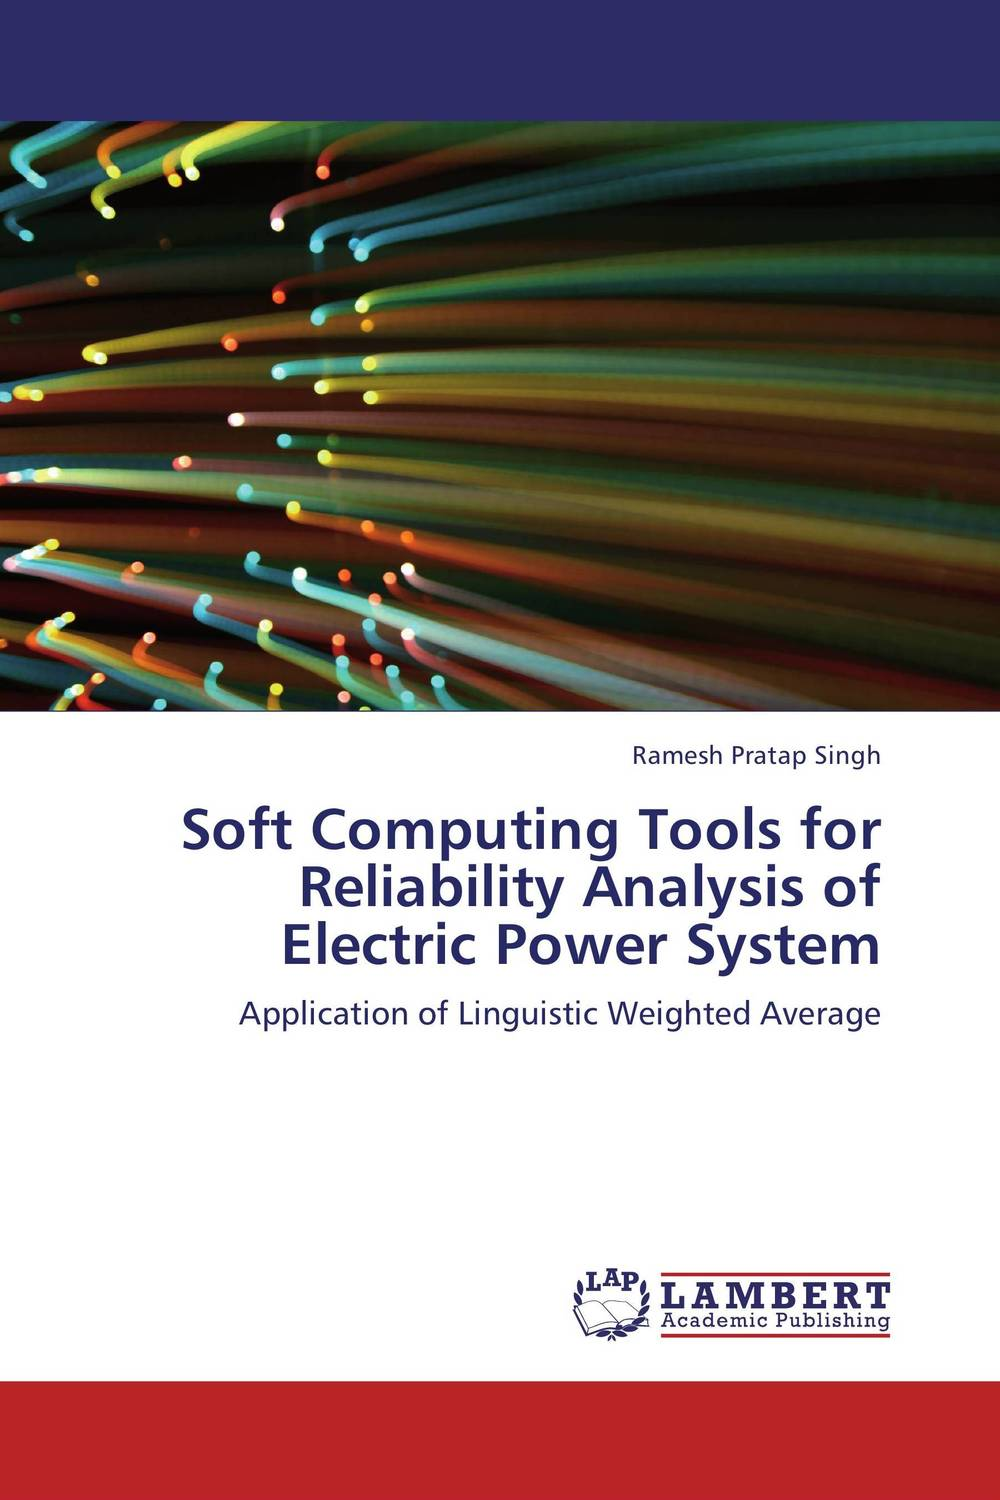 Soft Computing Tools for Reliability Analysis of Electric Power System netcat power tools